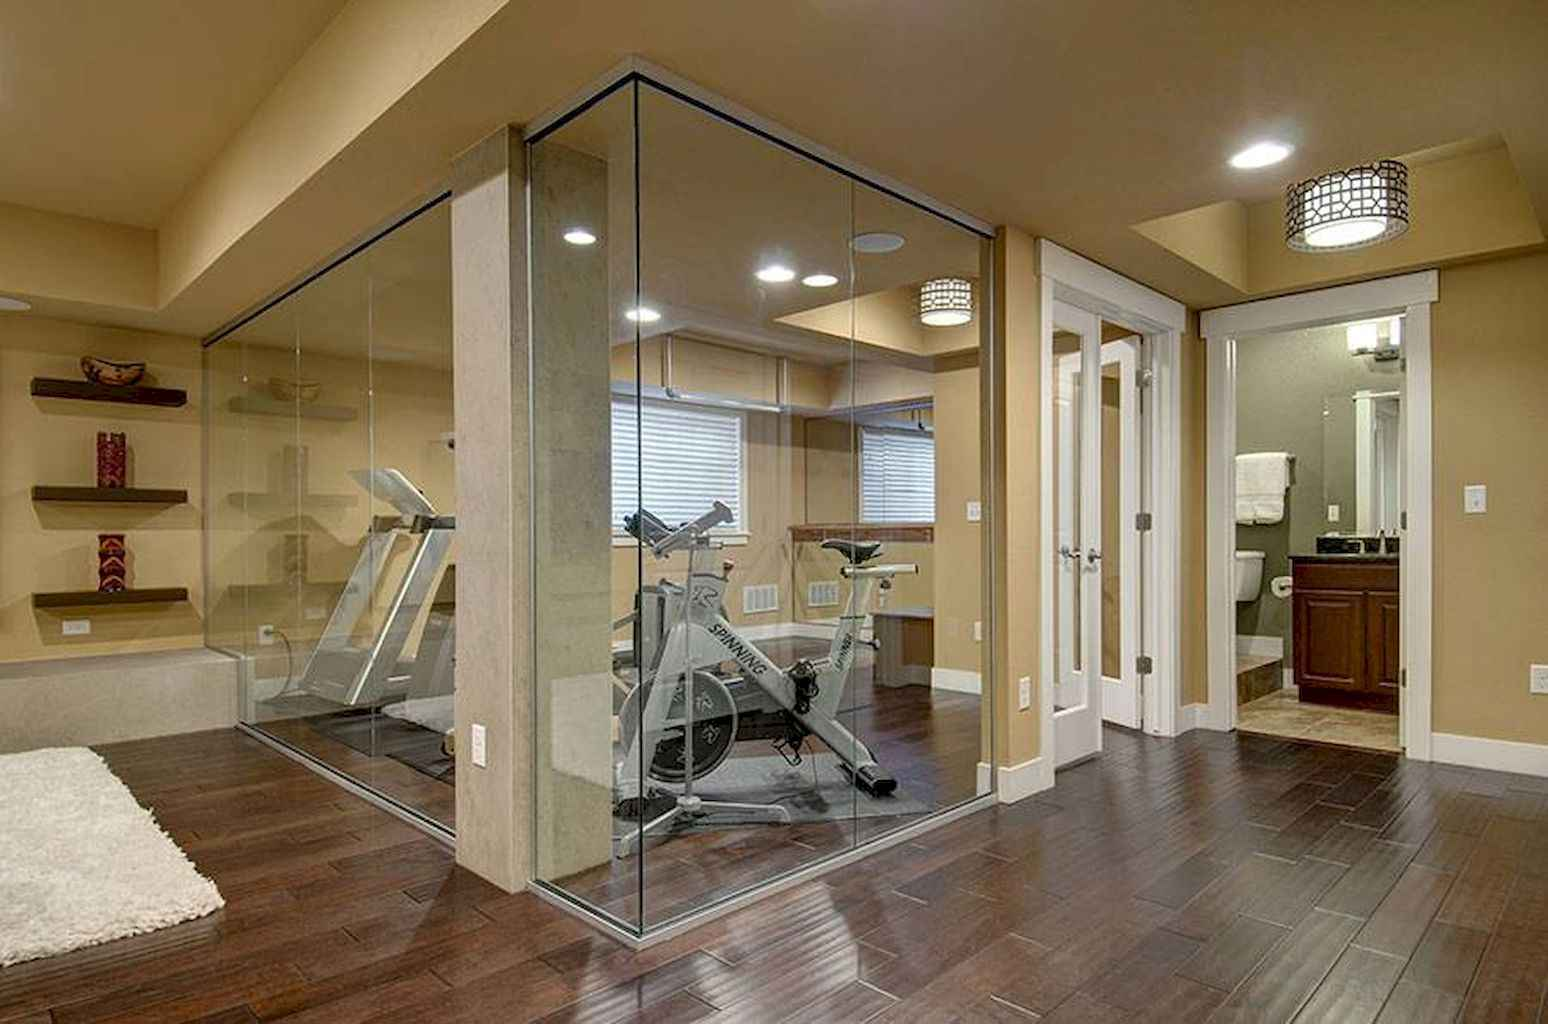 Home gym ideas small spaces 11 LivingMarch